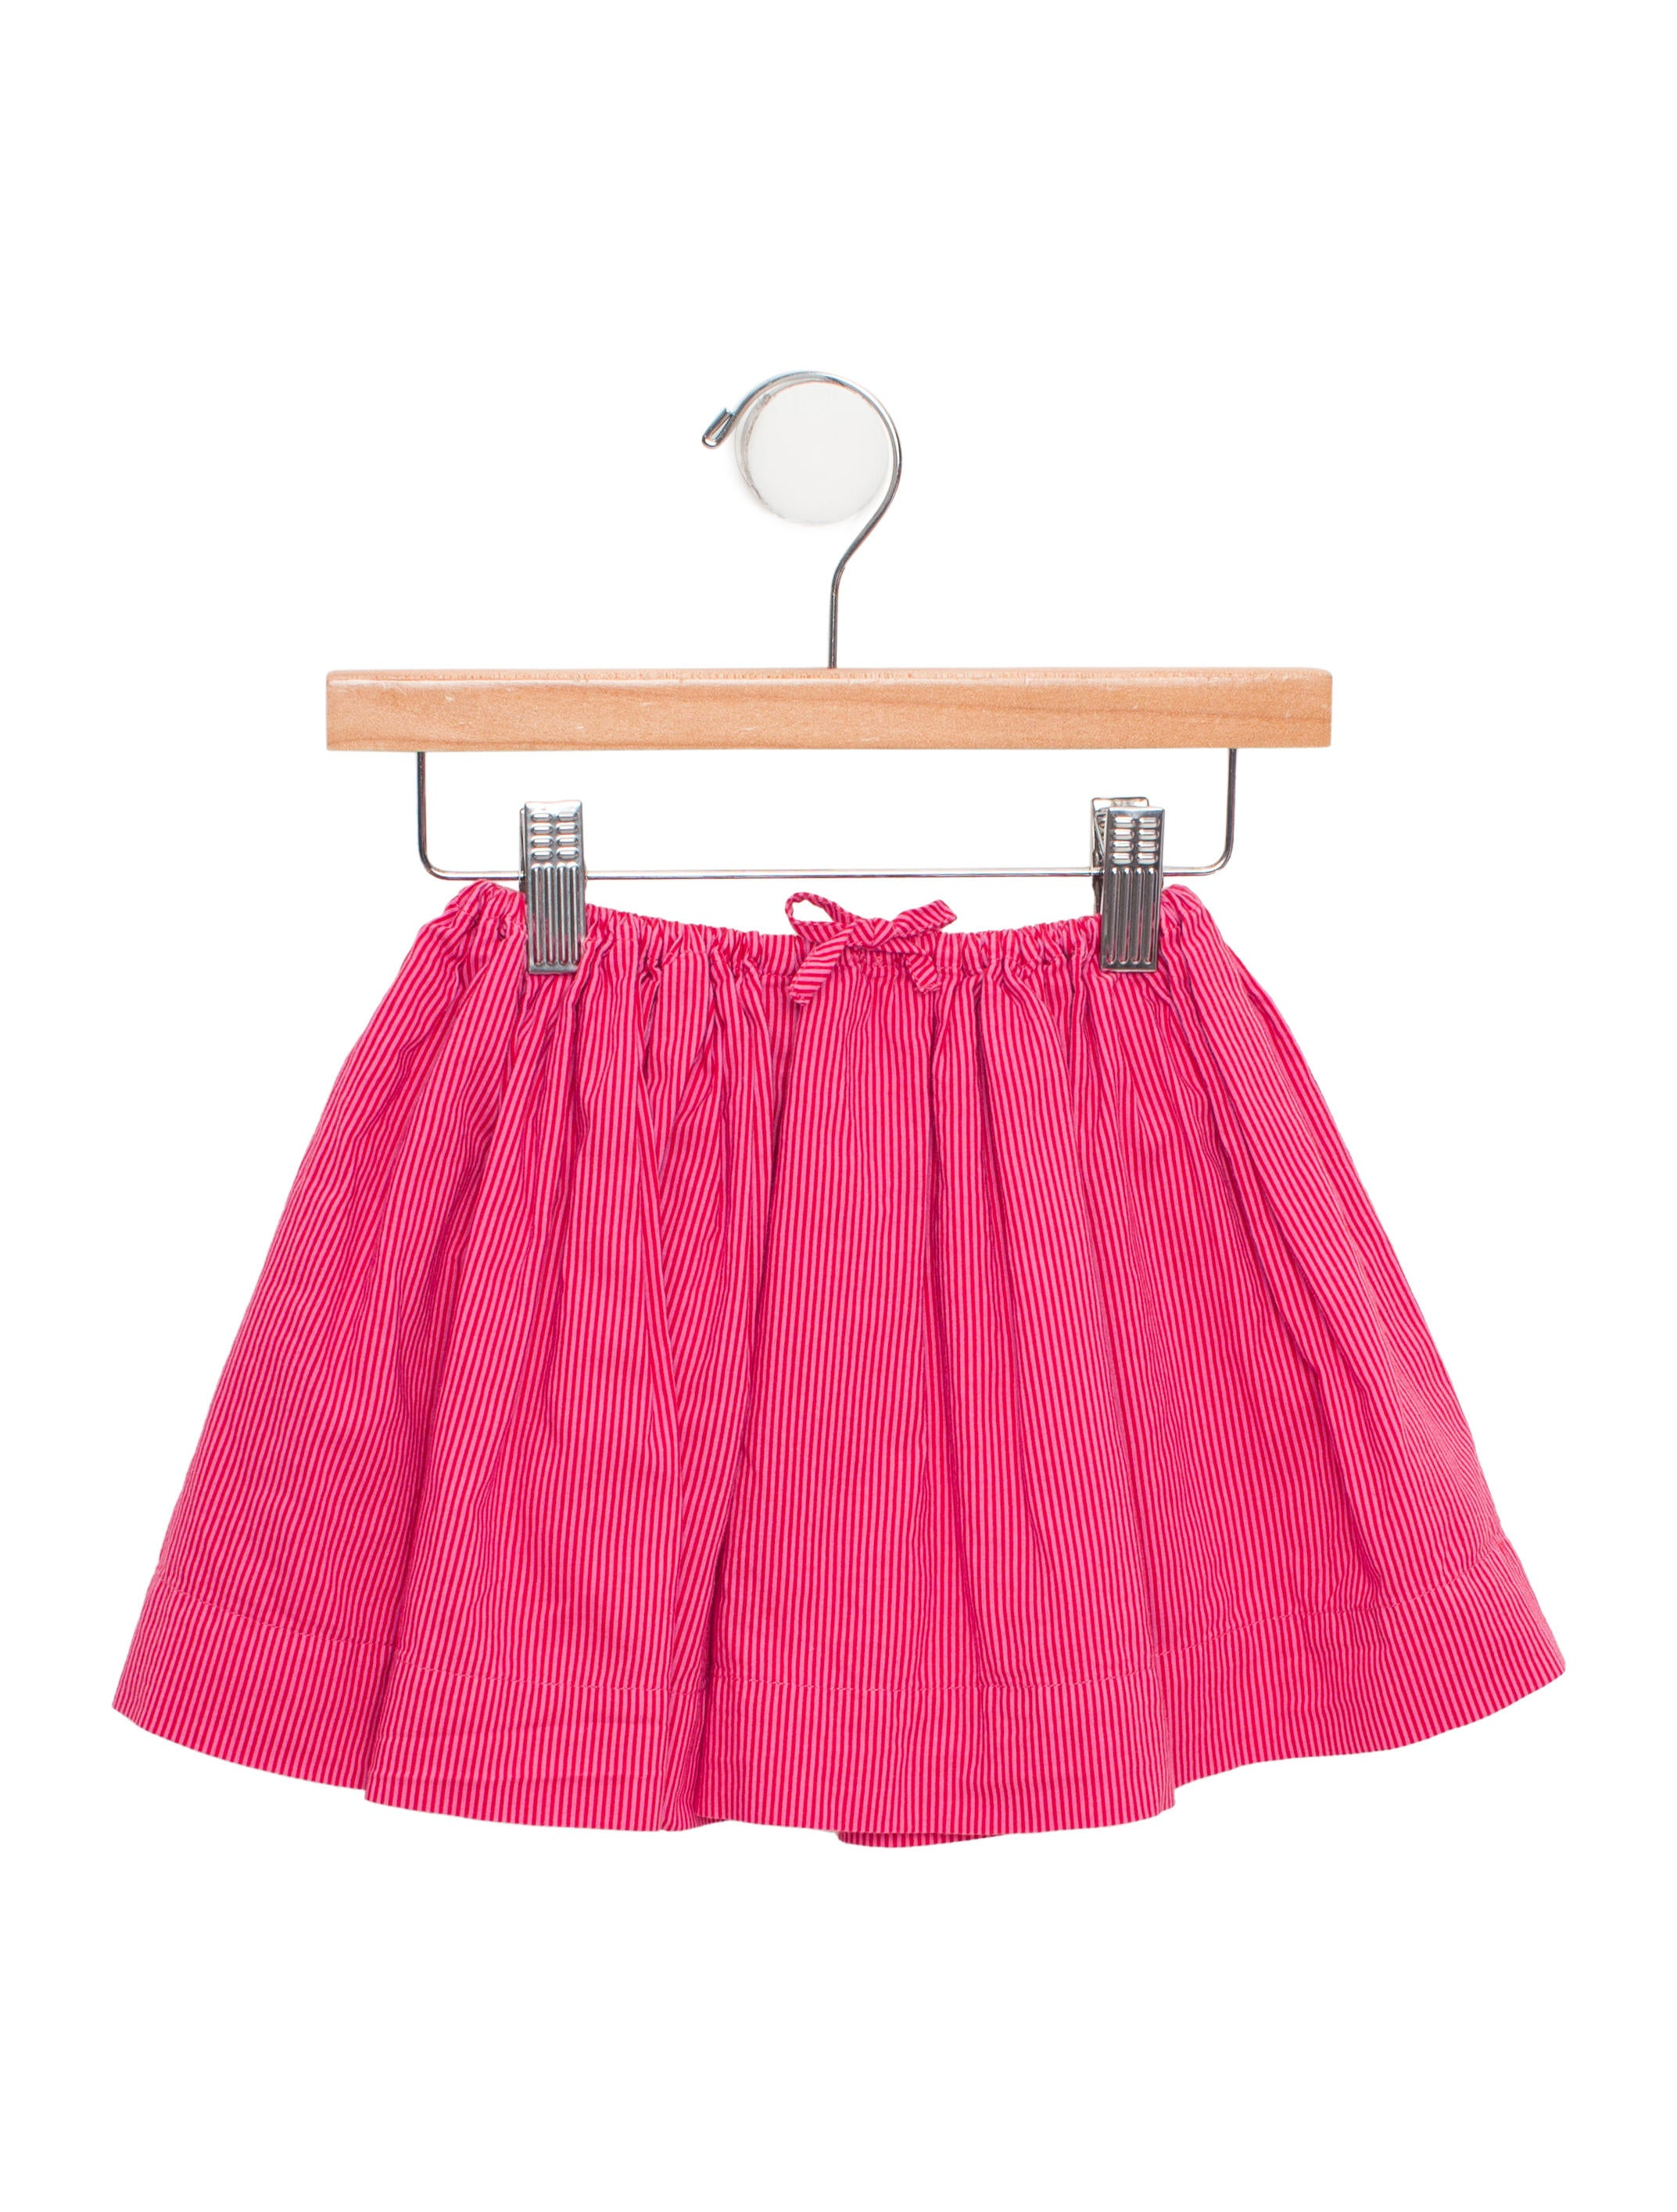 Find great deals on eBay for girls circle skirt. Shop with confidence.